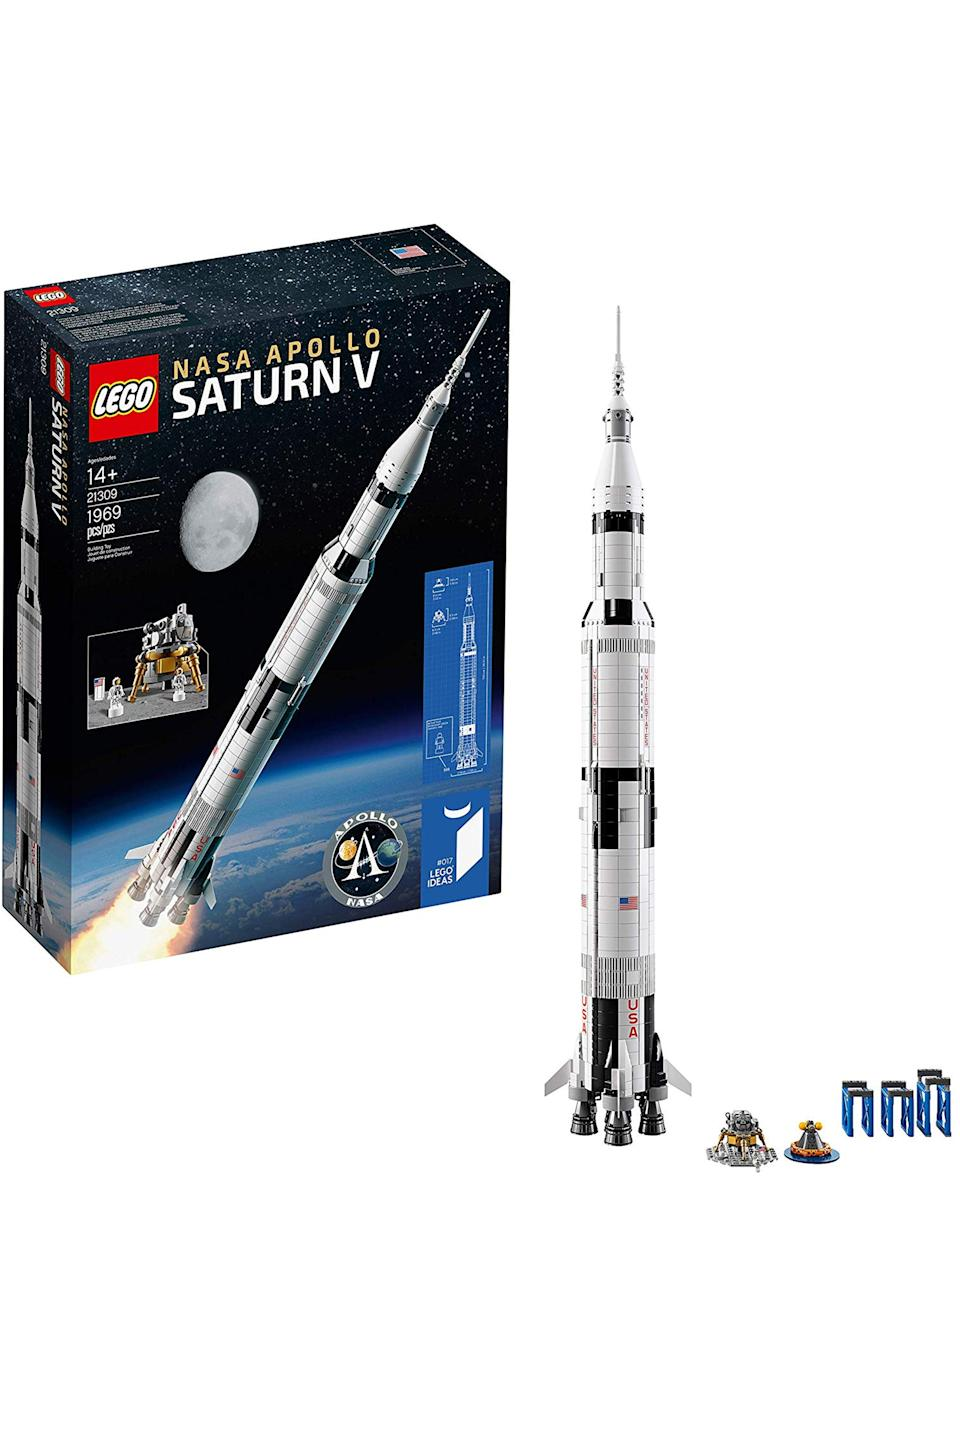 "<p><strong>LEGO</strong></p><p>amazon.com</p><p><strong>$99.99</strong></p><p><a href=""http://www.amazon.com/dp/B071G3QMS2/?tag=syn-yahoo-20&ascsubtag=%5Bartid%7C10067.g.12475659%5Bsrc%7Cyahoo-us"" rel=""nofollow noopener"" target=""_blank"" data-ylk=""slk:Shop Now"" class=""link rapid-noclick-resp"">Shop Now</a></p><p>For the space enthusiast who is equally obsessed with legos, you can't go wrong with this model of NASA's Apollo Saturn V. </p>"